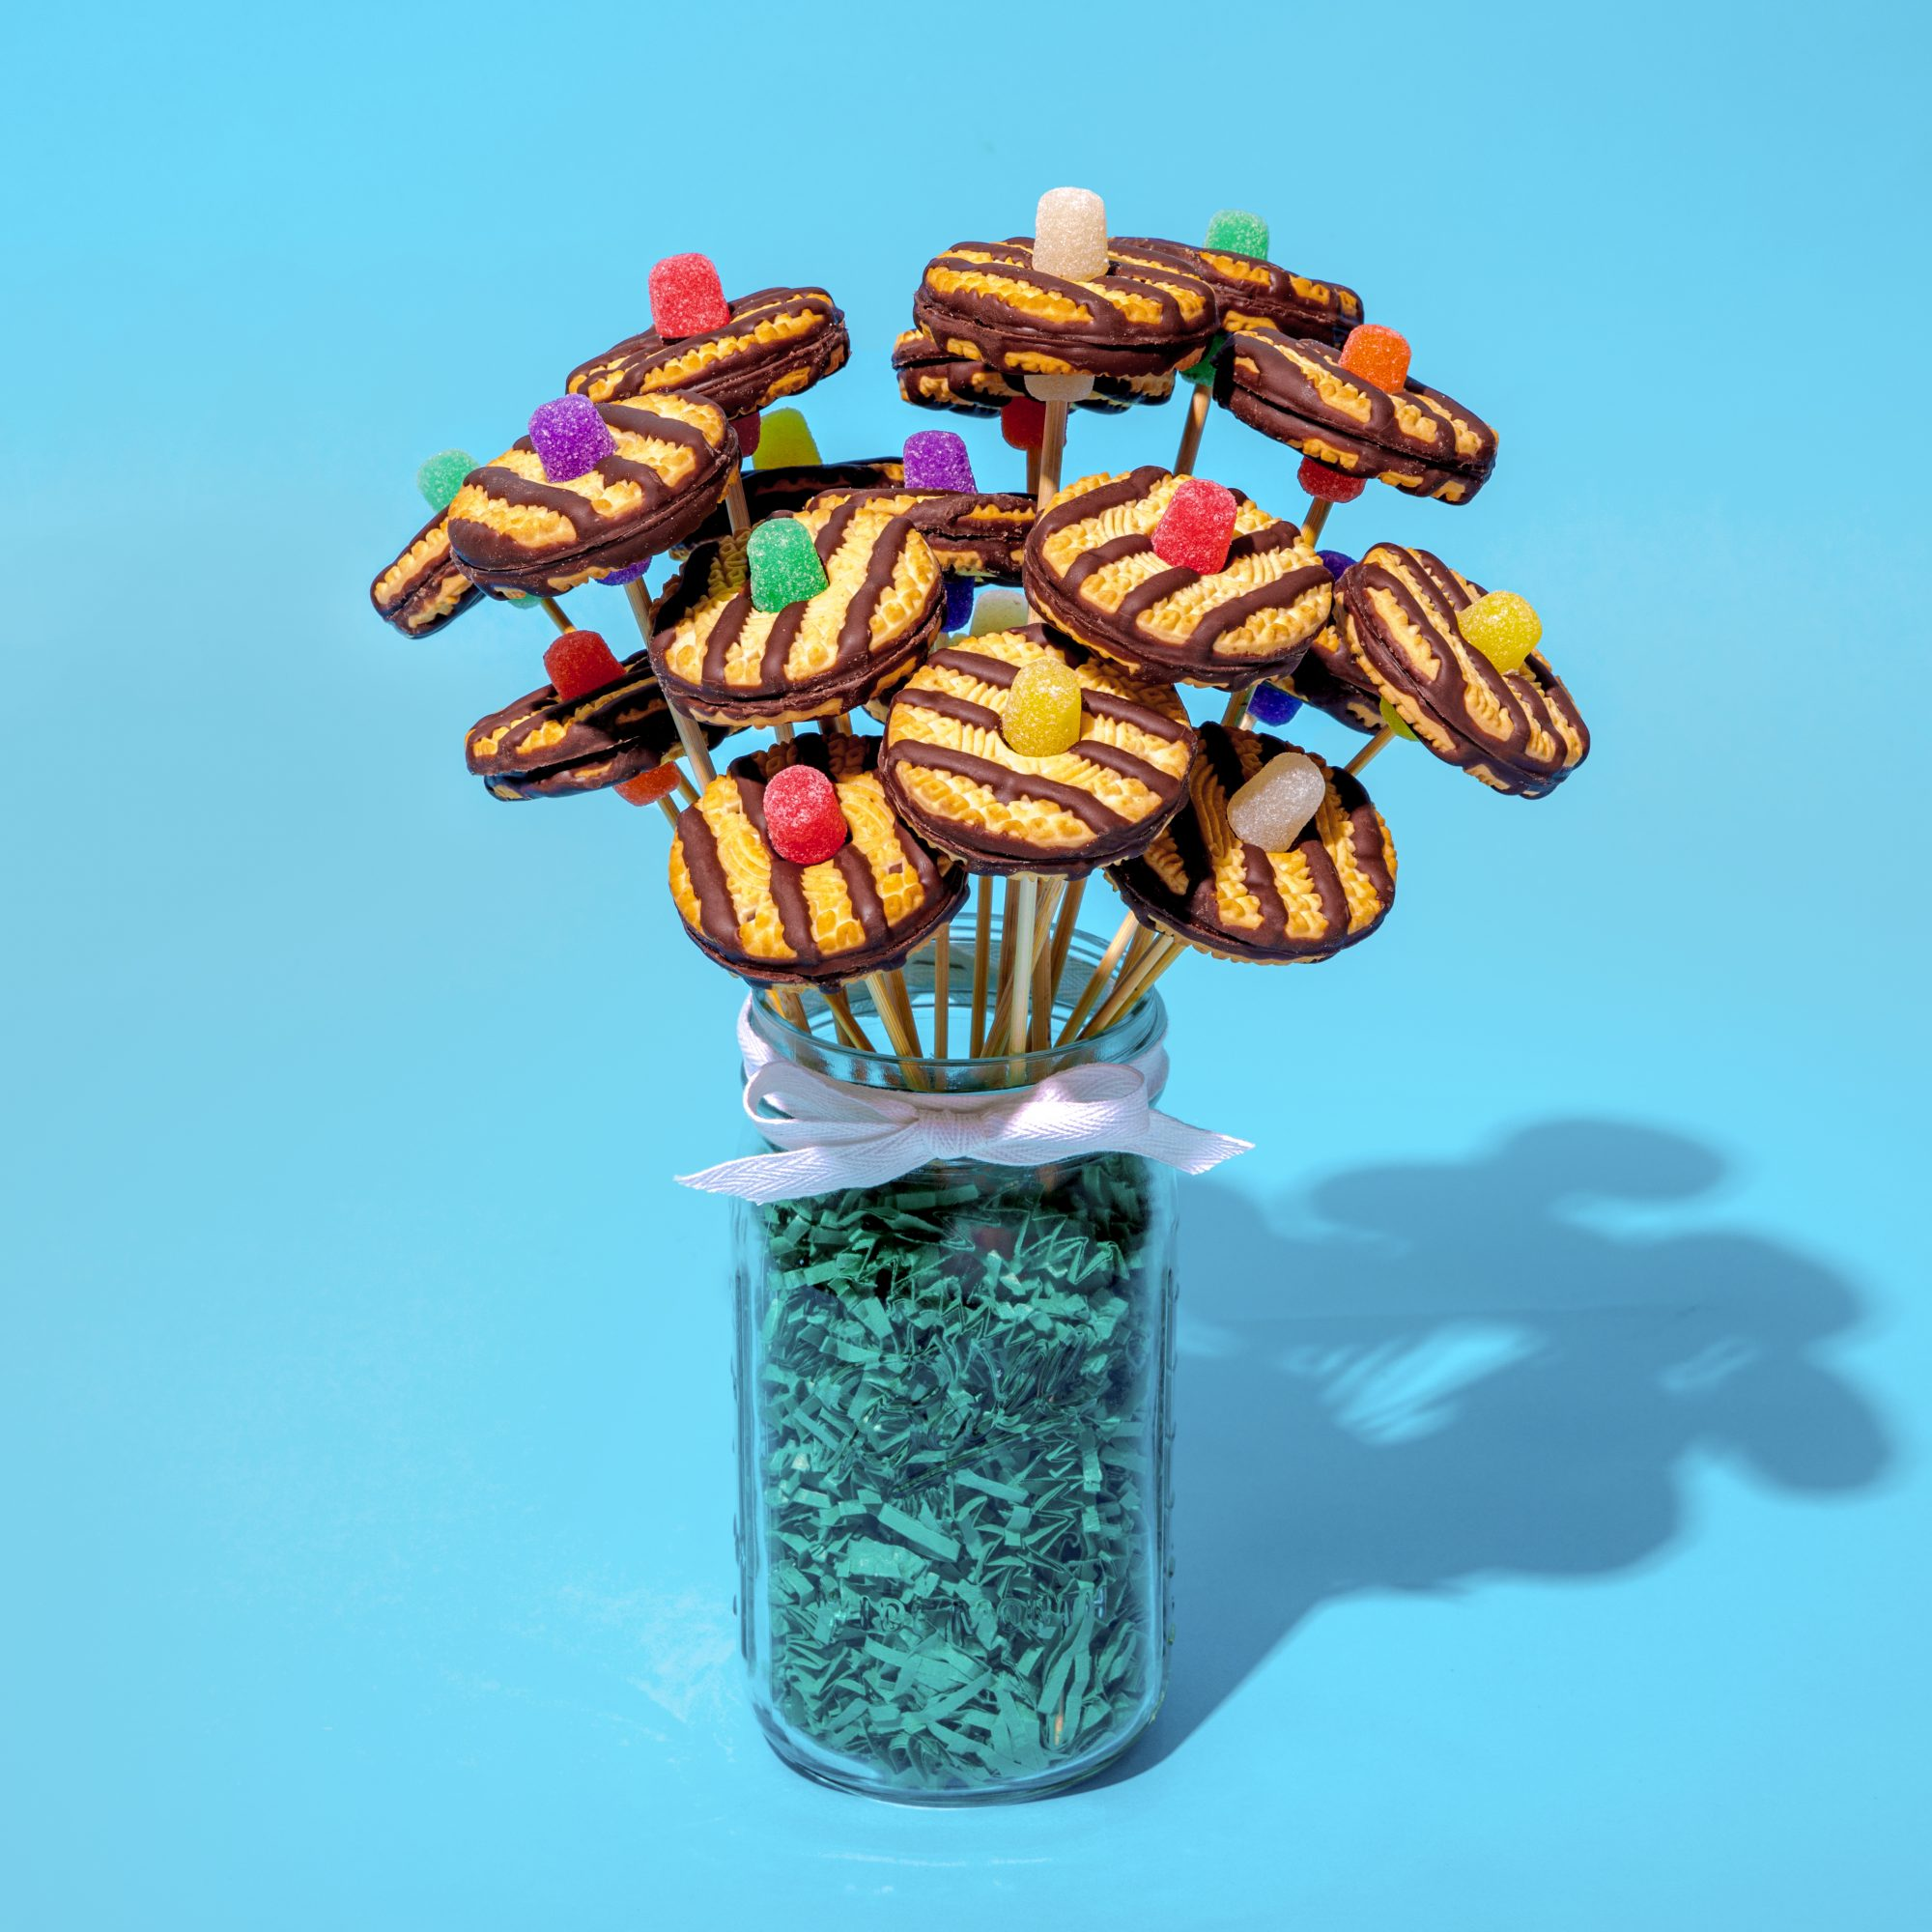 Keebler Fudge Stripes Cookie Bouquet - Edit 05